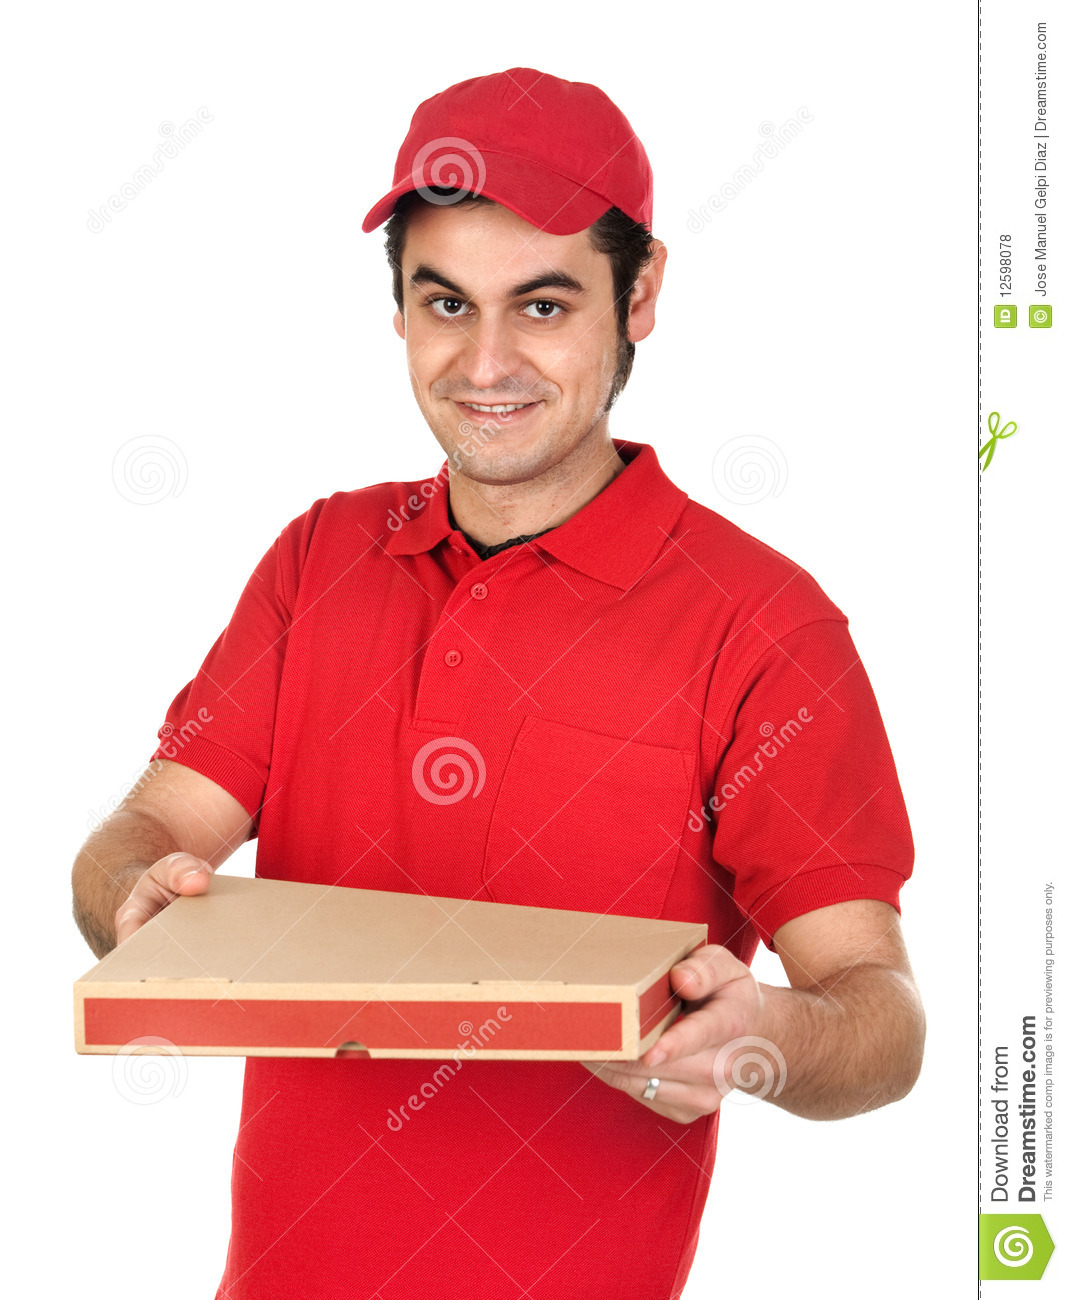 I gave up online dating for the pizza boy